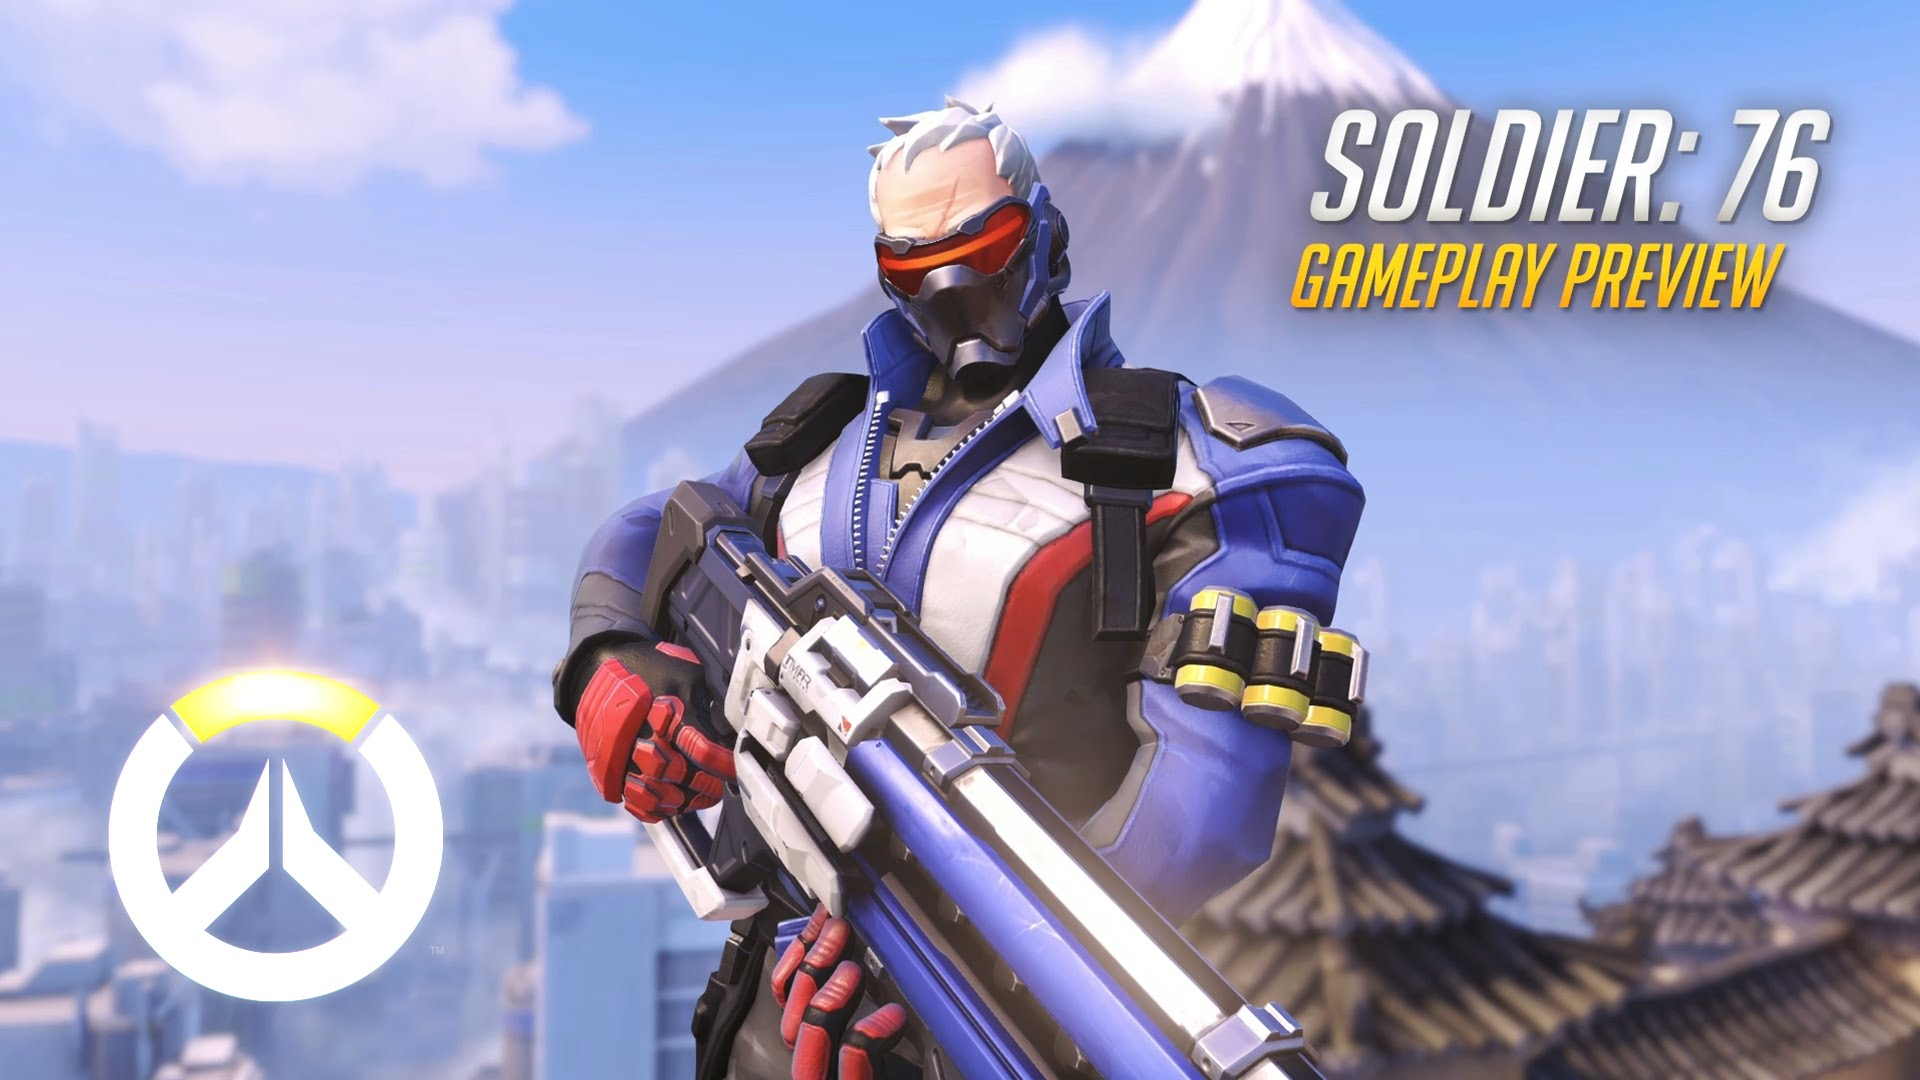 Free download Overwatch Soldier 76 Gameplay Preview